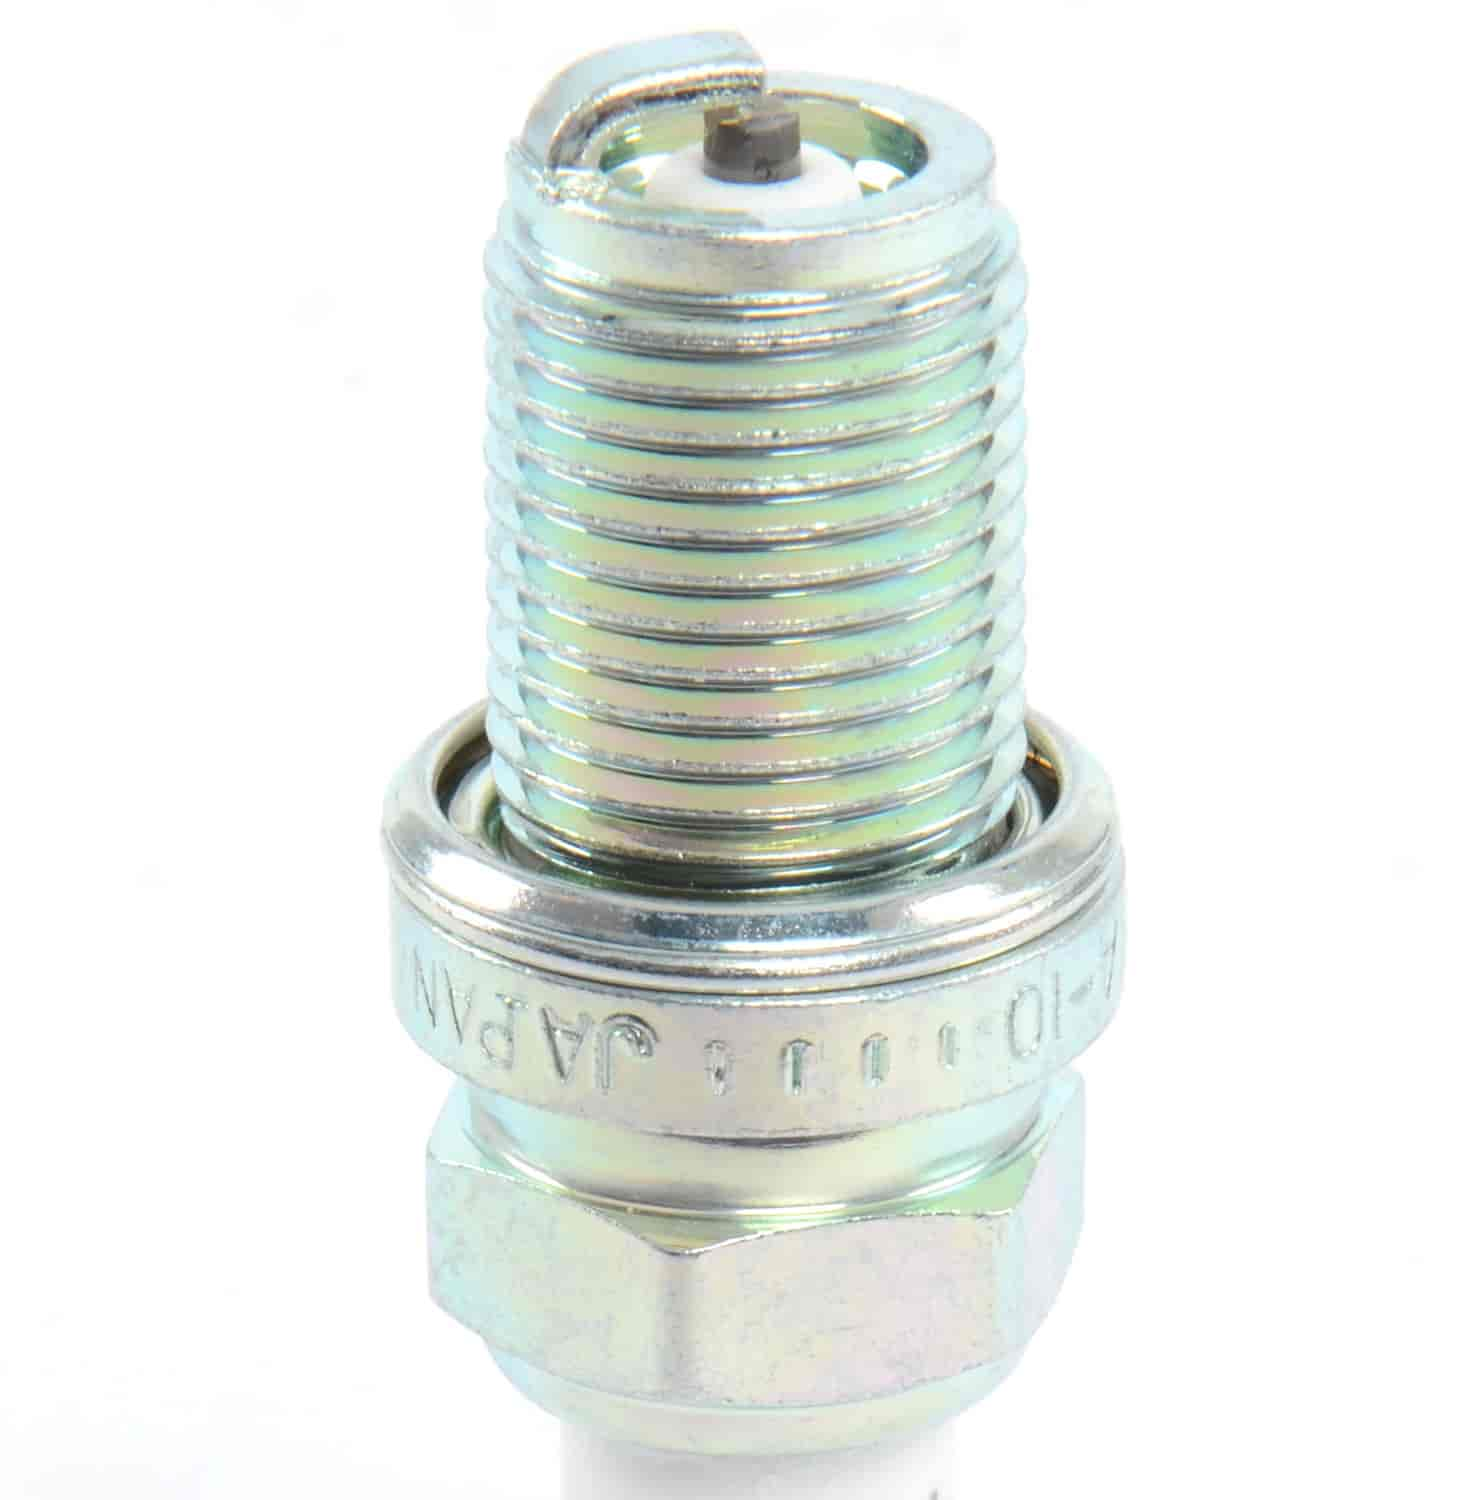 NGK Spark Plugs R5671A-10